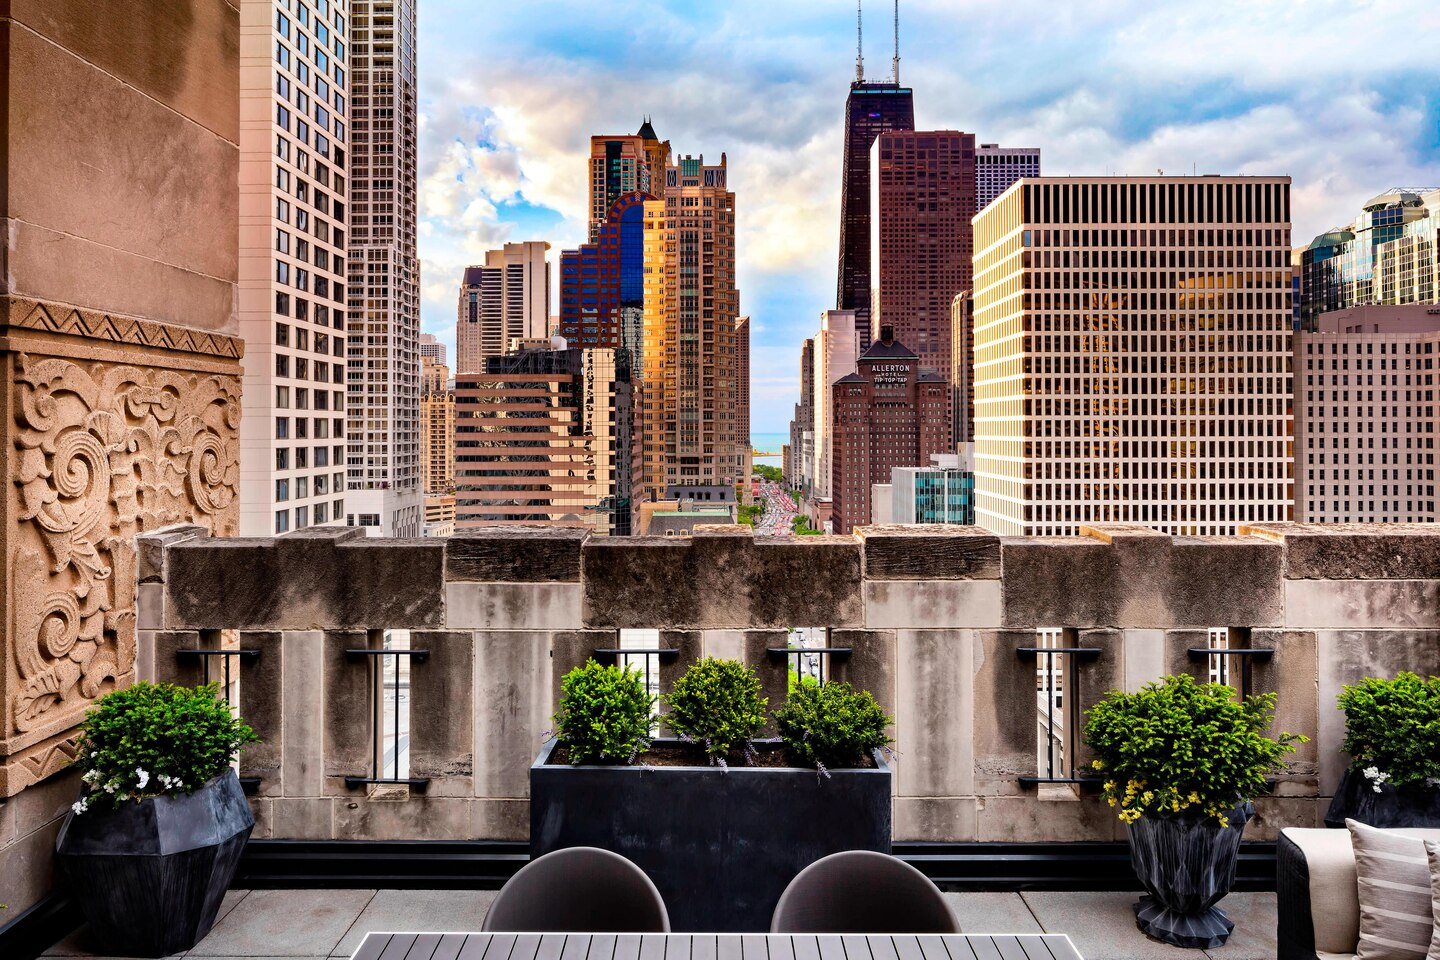 48 hours in Chicago